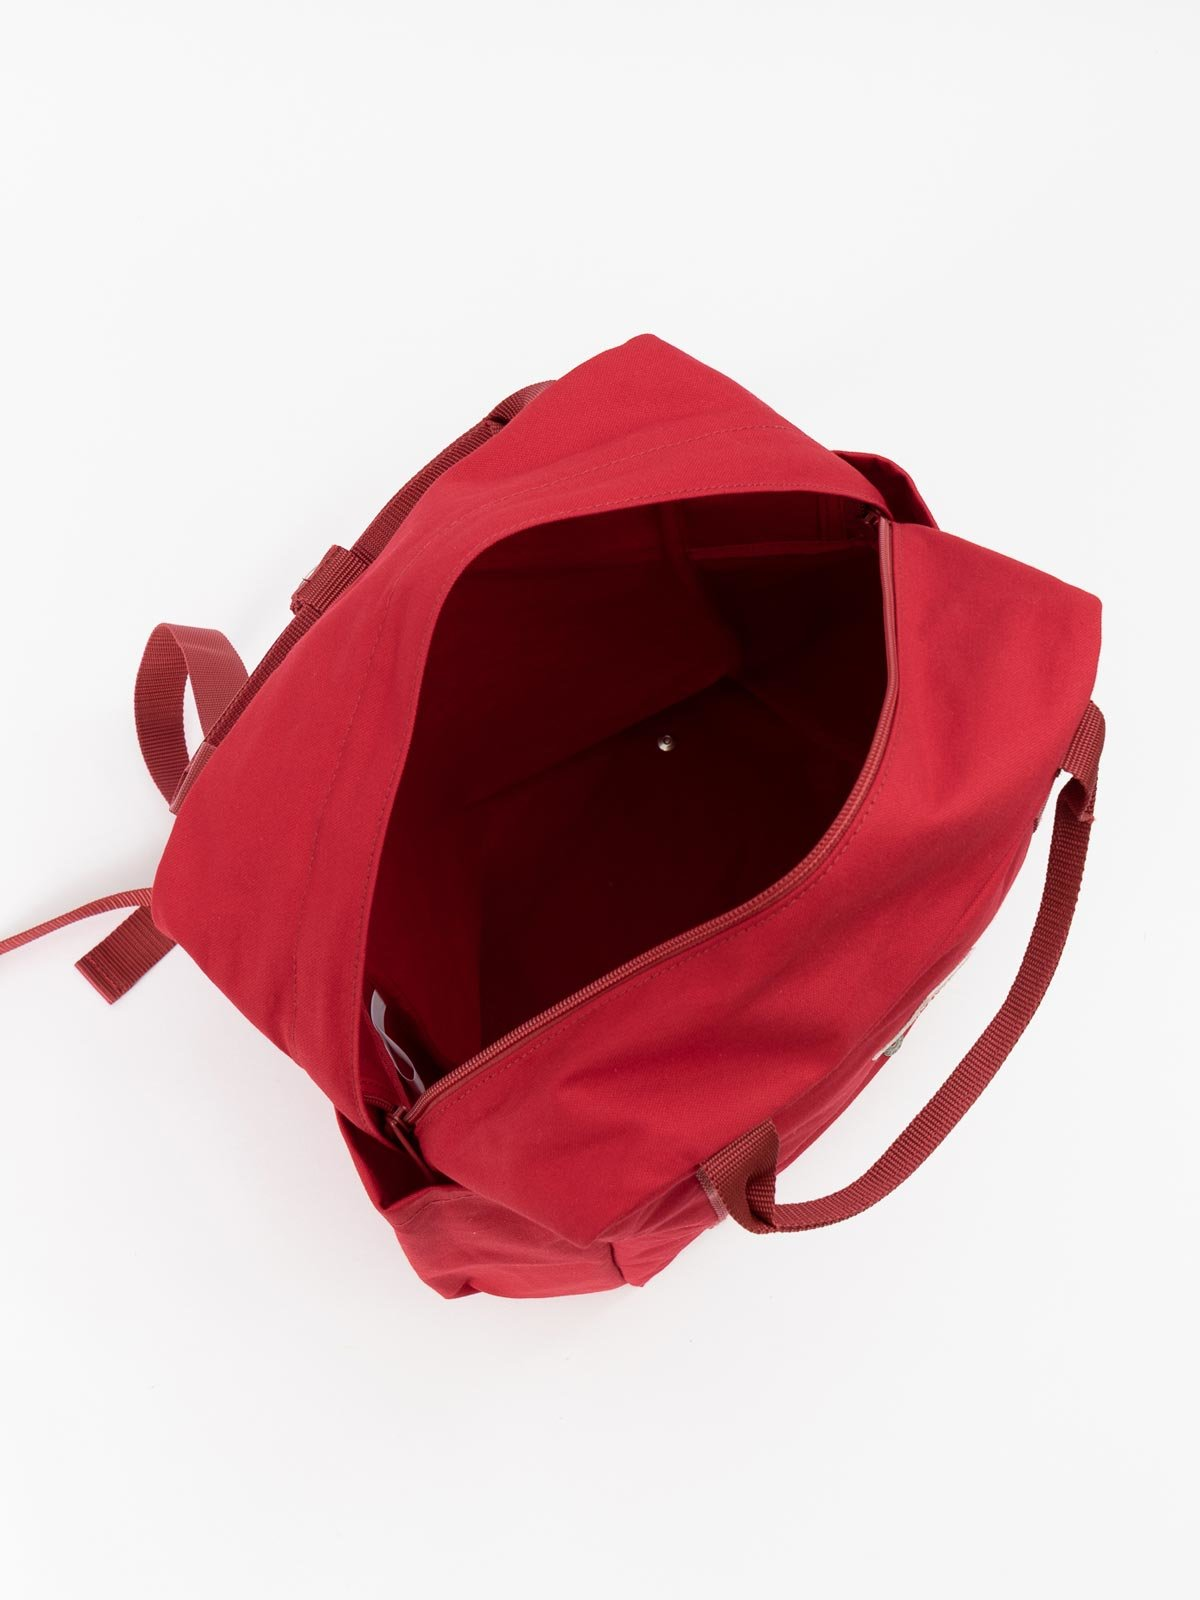 UTILITY BAG RED - Image 6